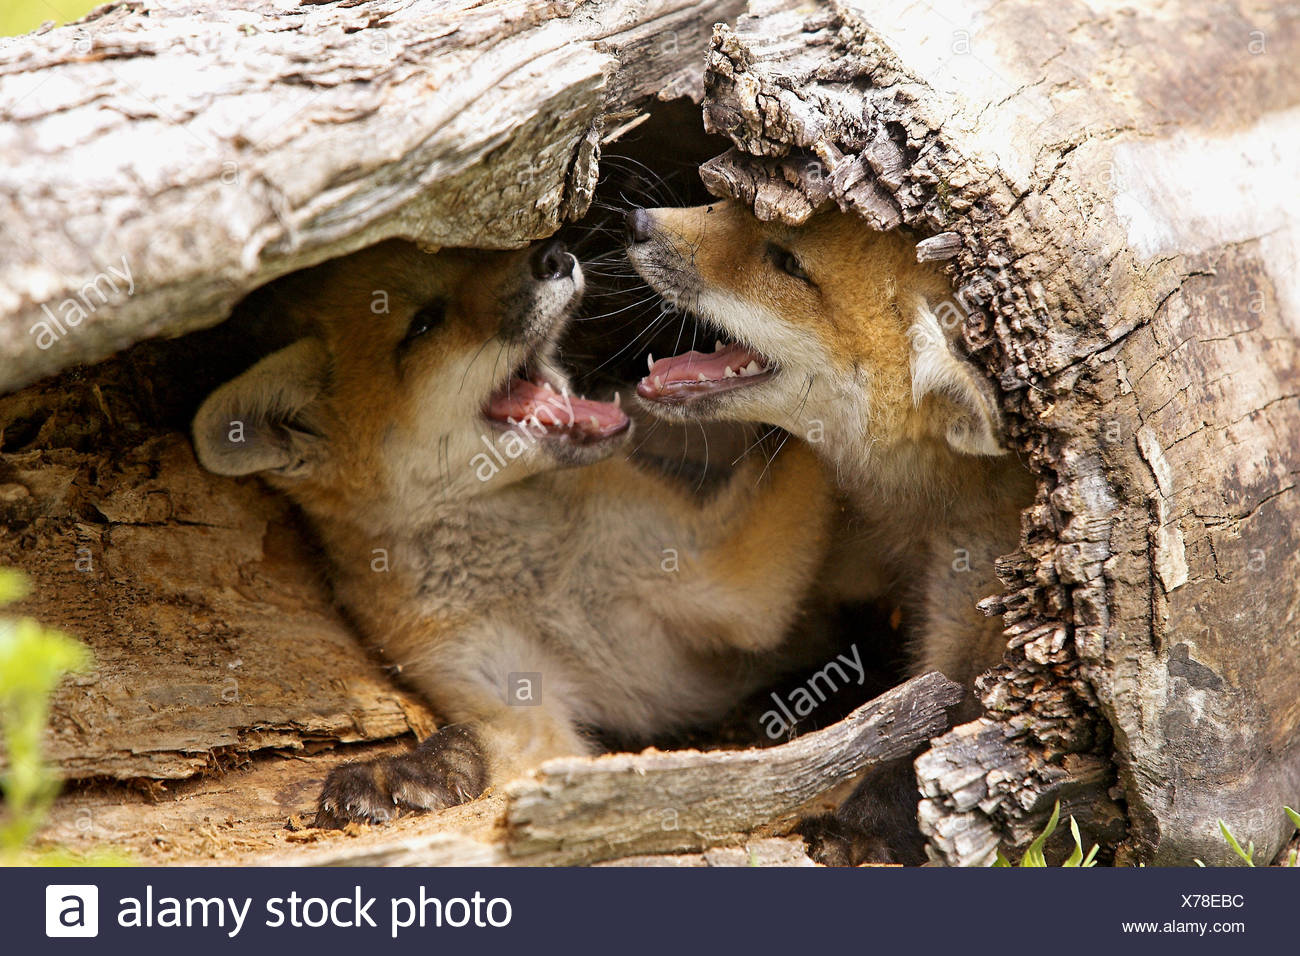 Red Fox Vulpes Vulpes Cubs In A Game Farm Minnesota Usa Stock Photo Alamy